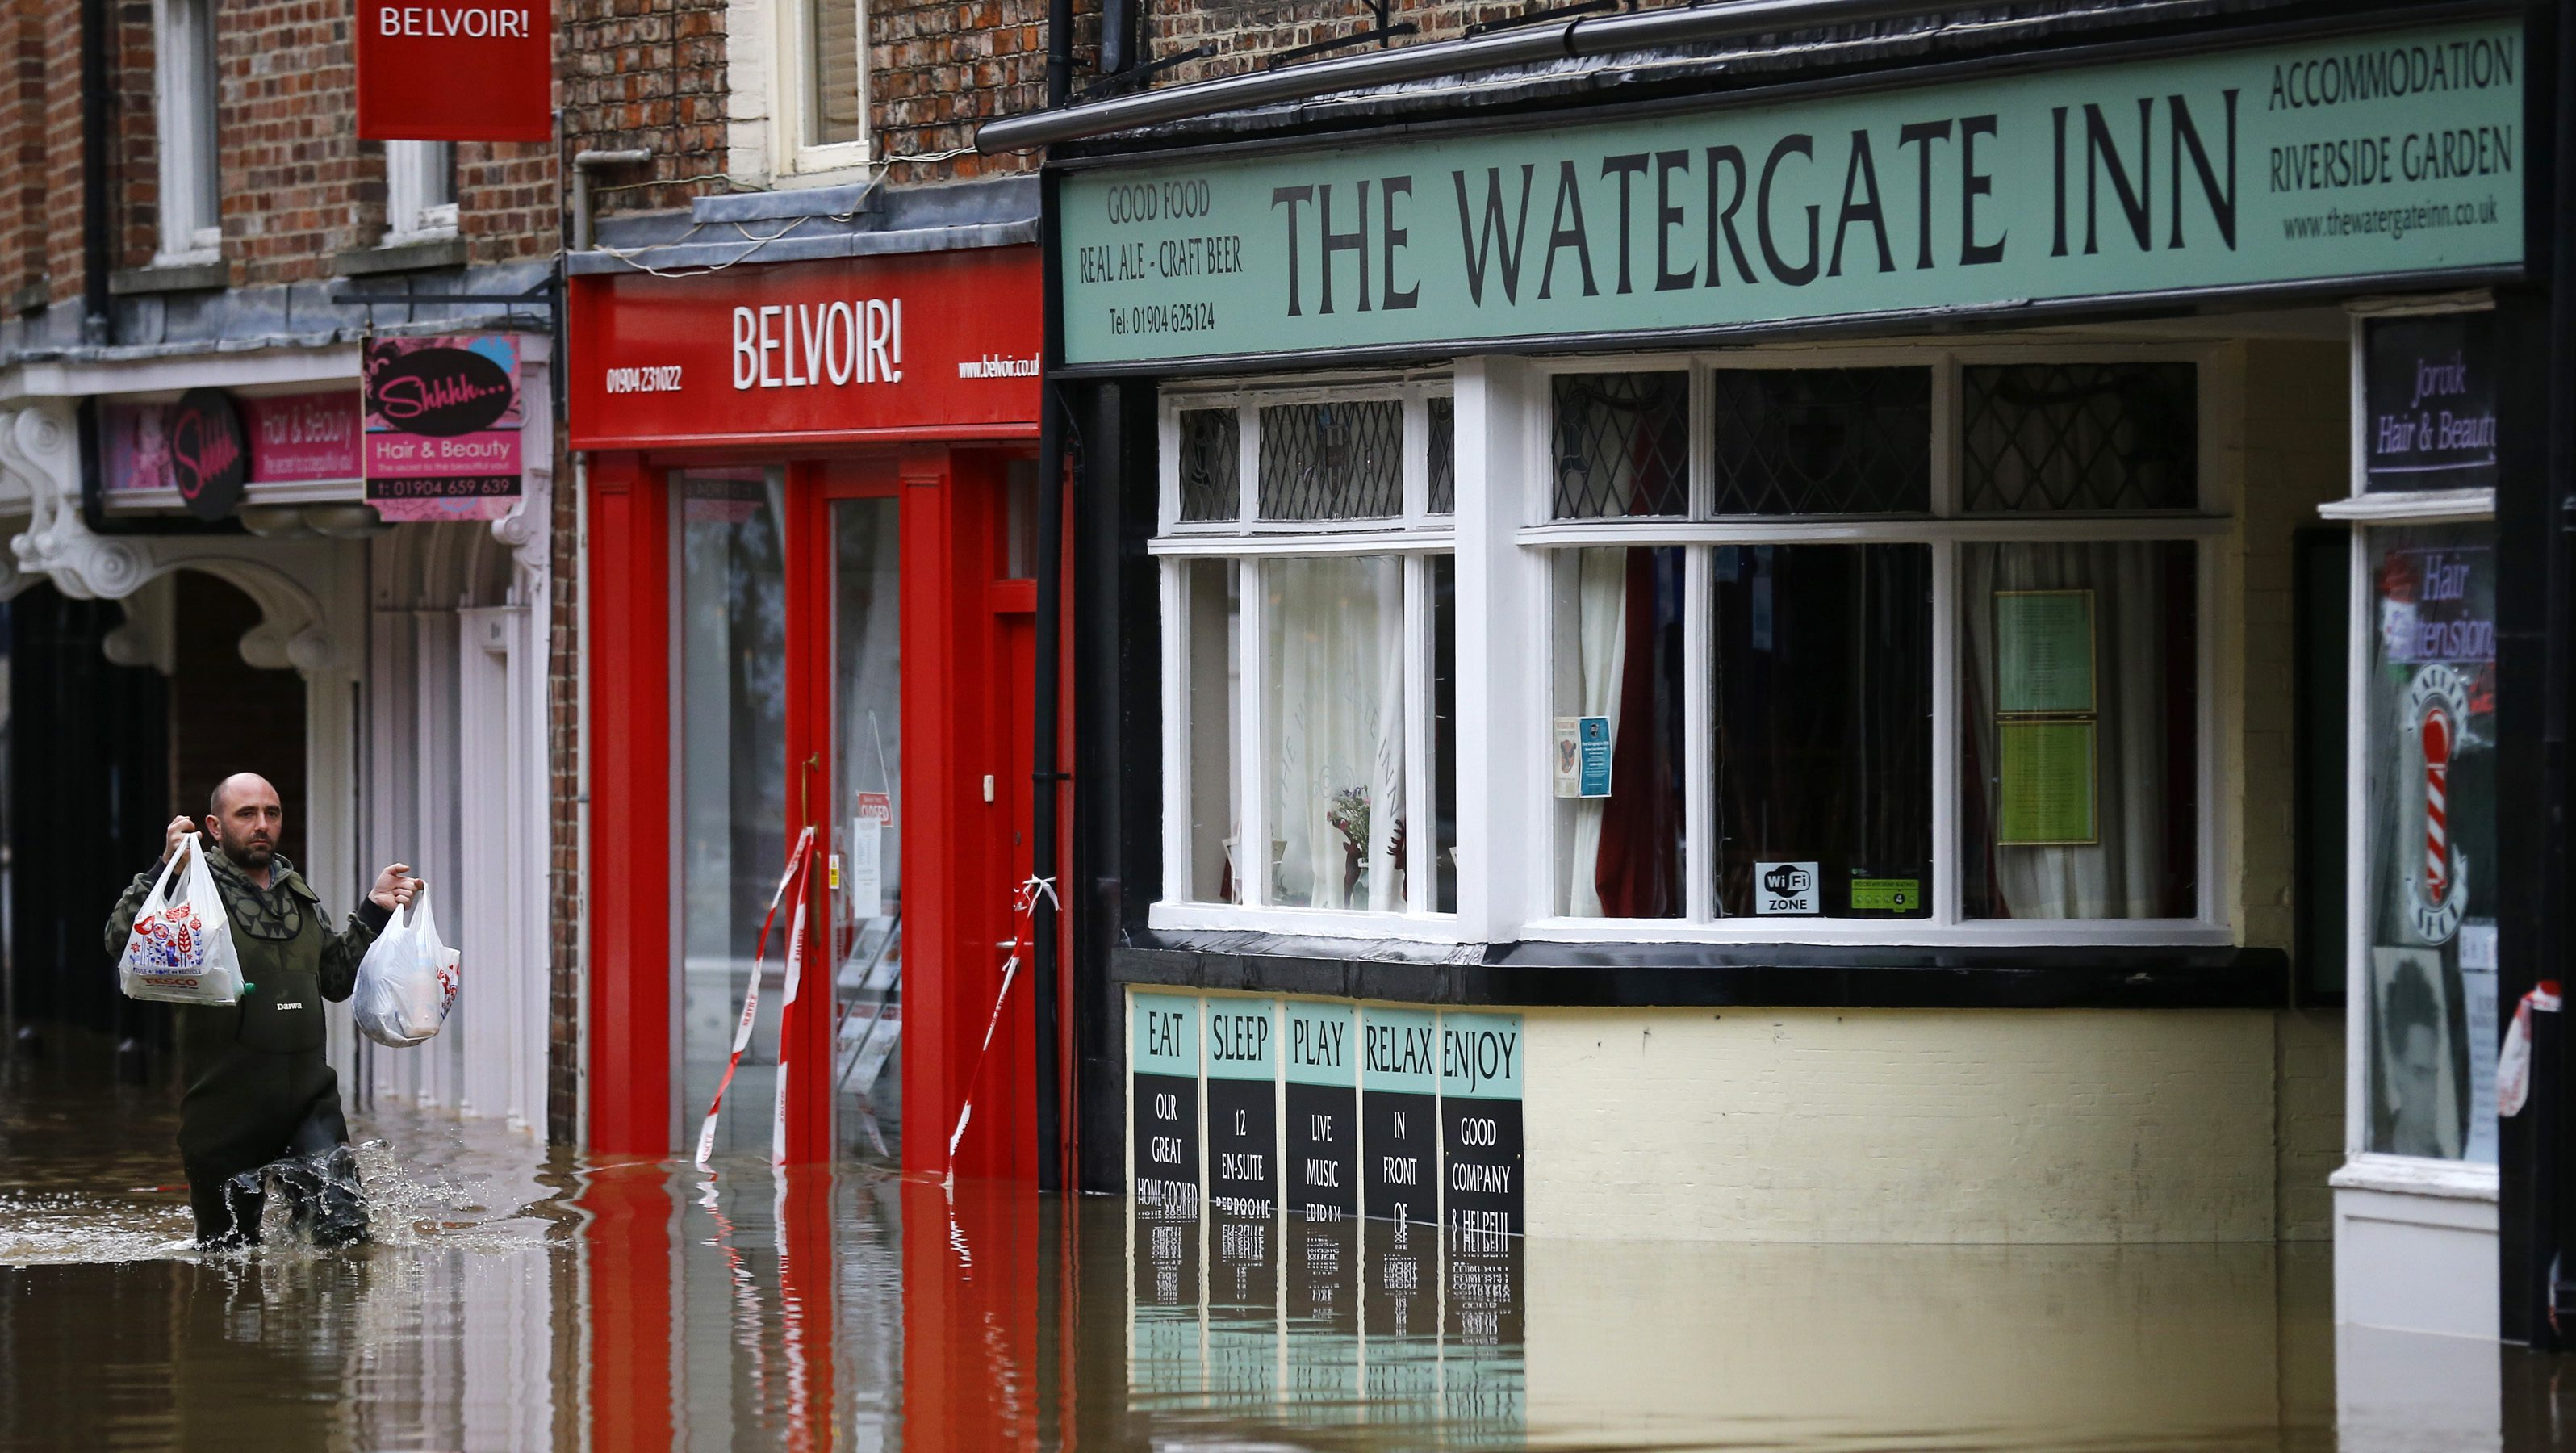 Floods are set to rise in 85% of UK cities that have a river.